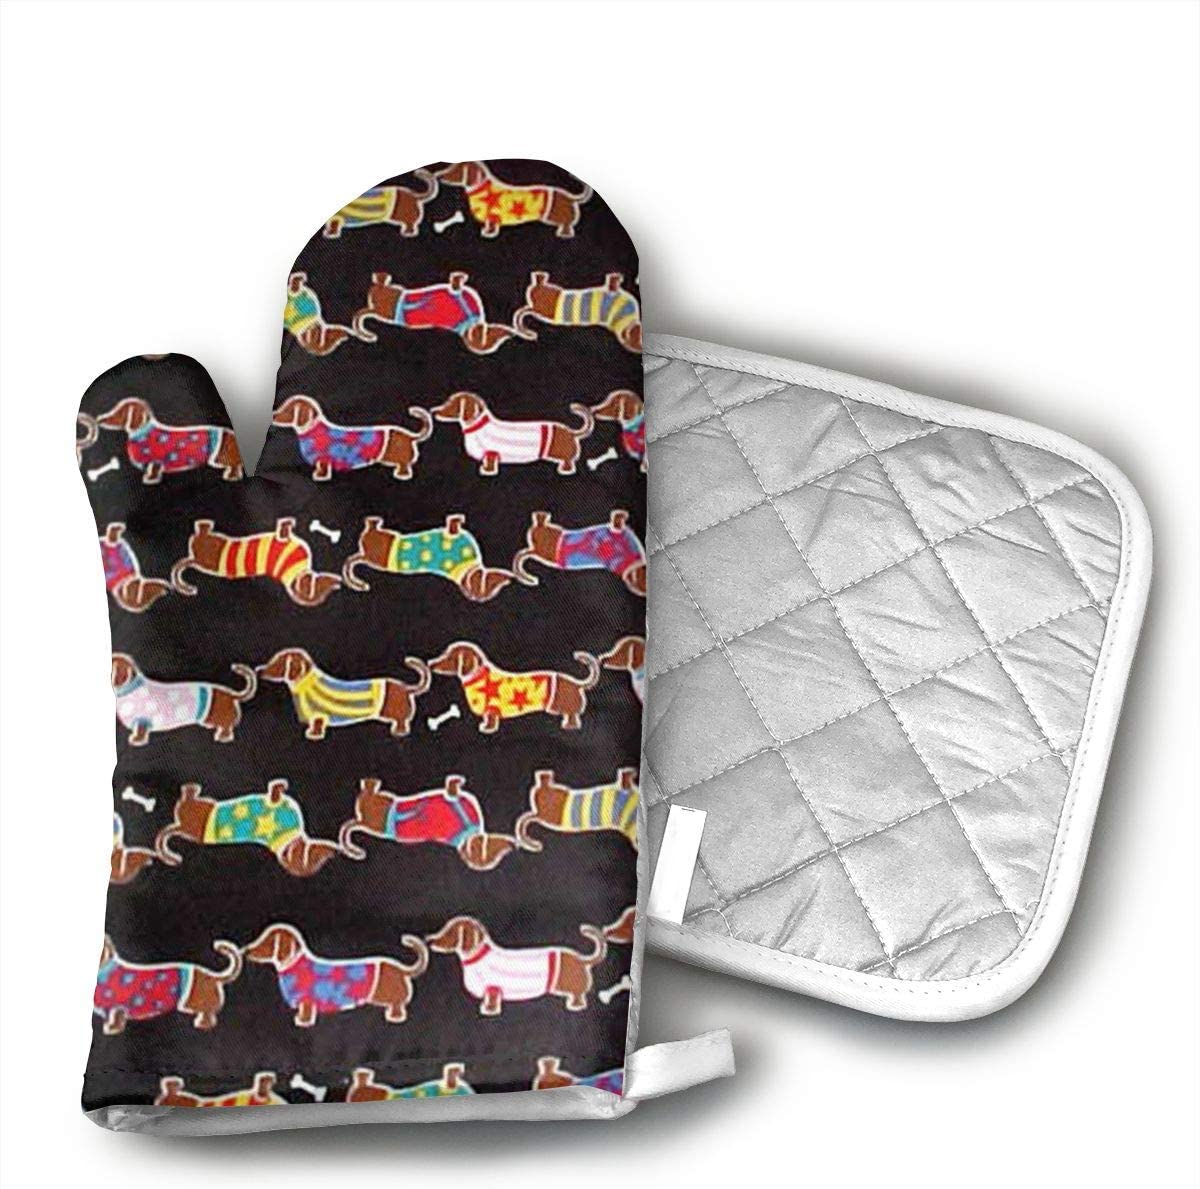 Teuwia Colored Wiener Dog Oven Mitts and Pot Holders Baking Oven Gloves Hot Pads Set Heat Resistant for Finger Hand Wrist Protection